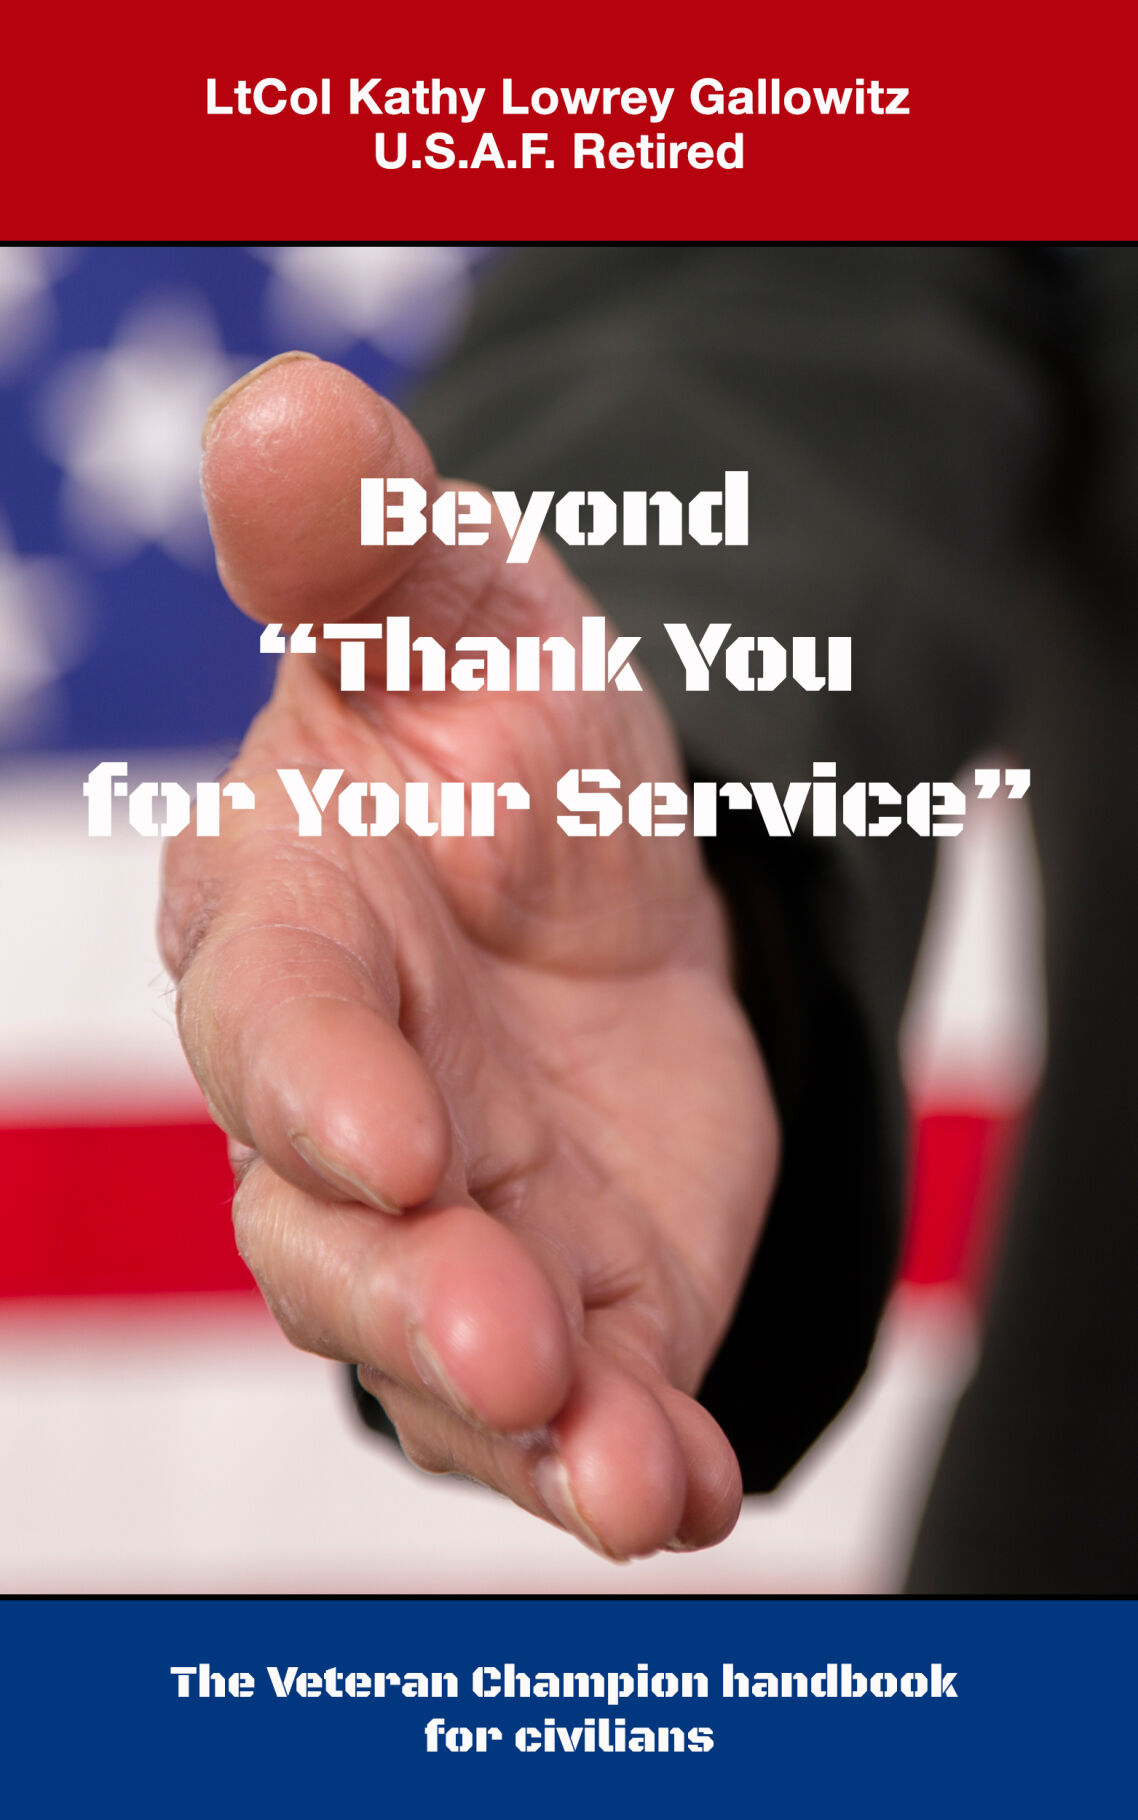 BEYOND 'THANK YOU FOR YOUR SERVICE'